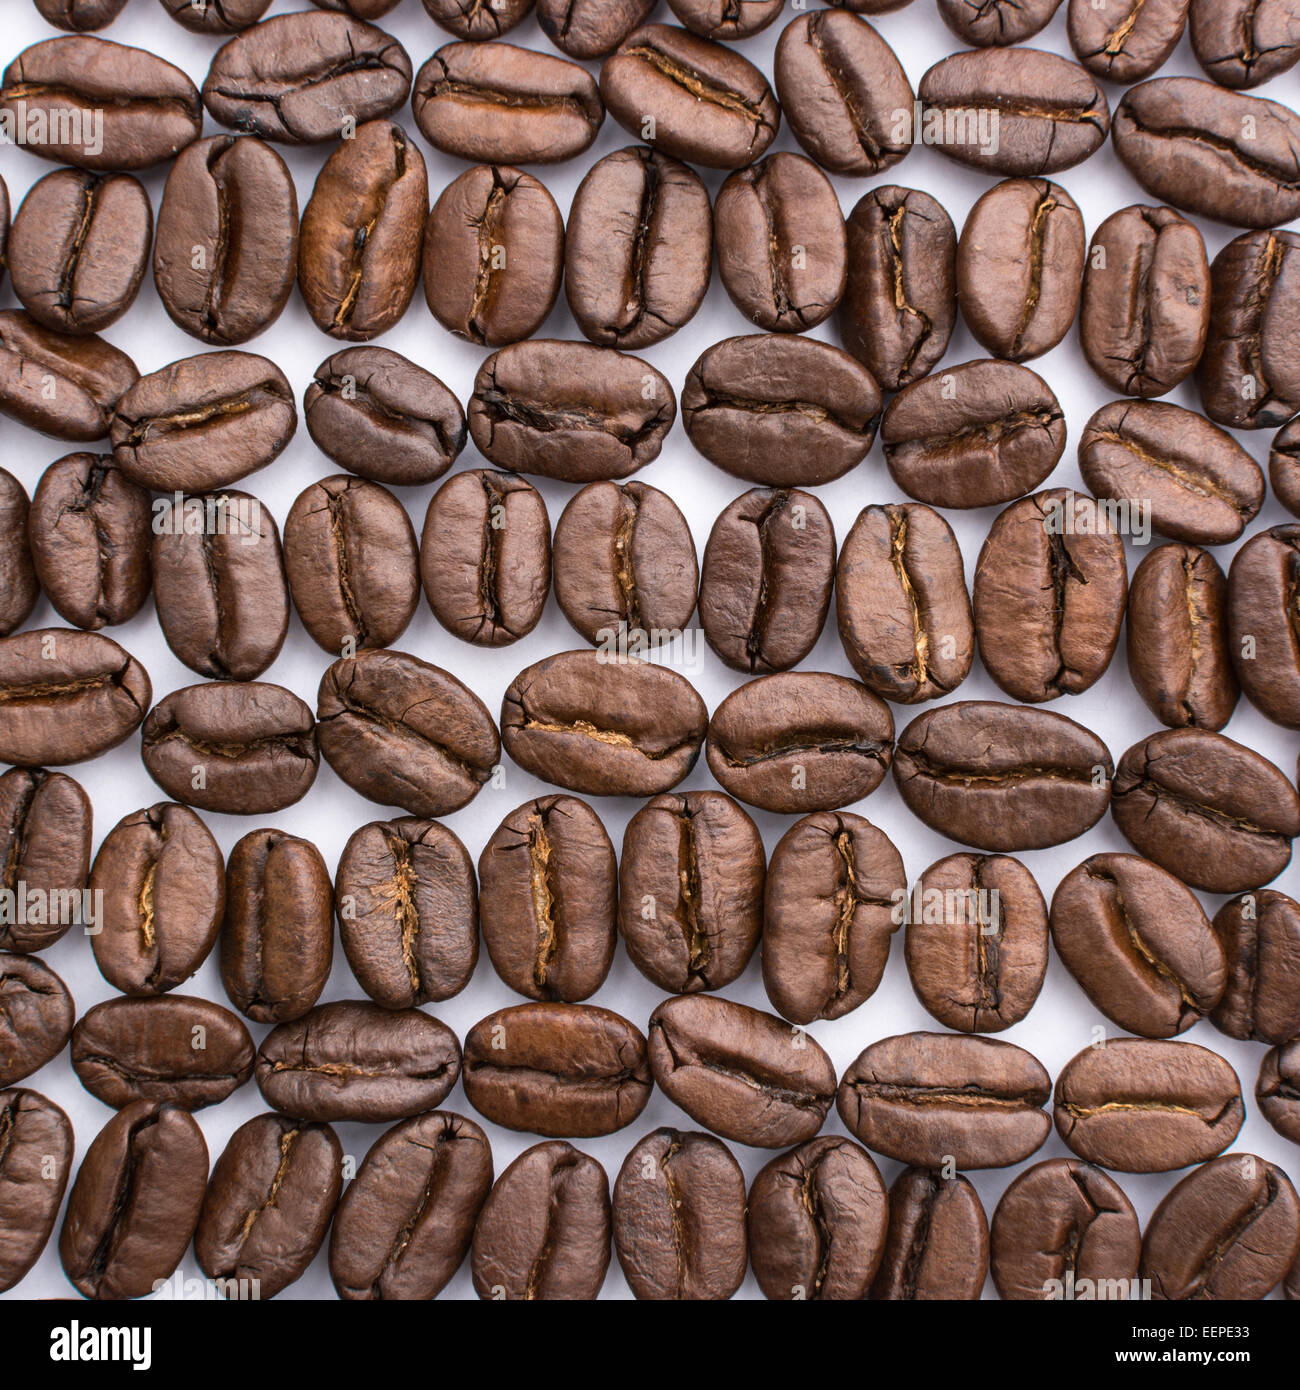 roasted coffee beans arranged into a regular pattern on white background - Stock Image